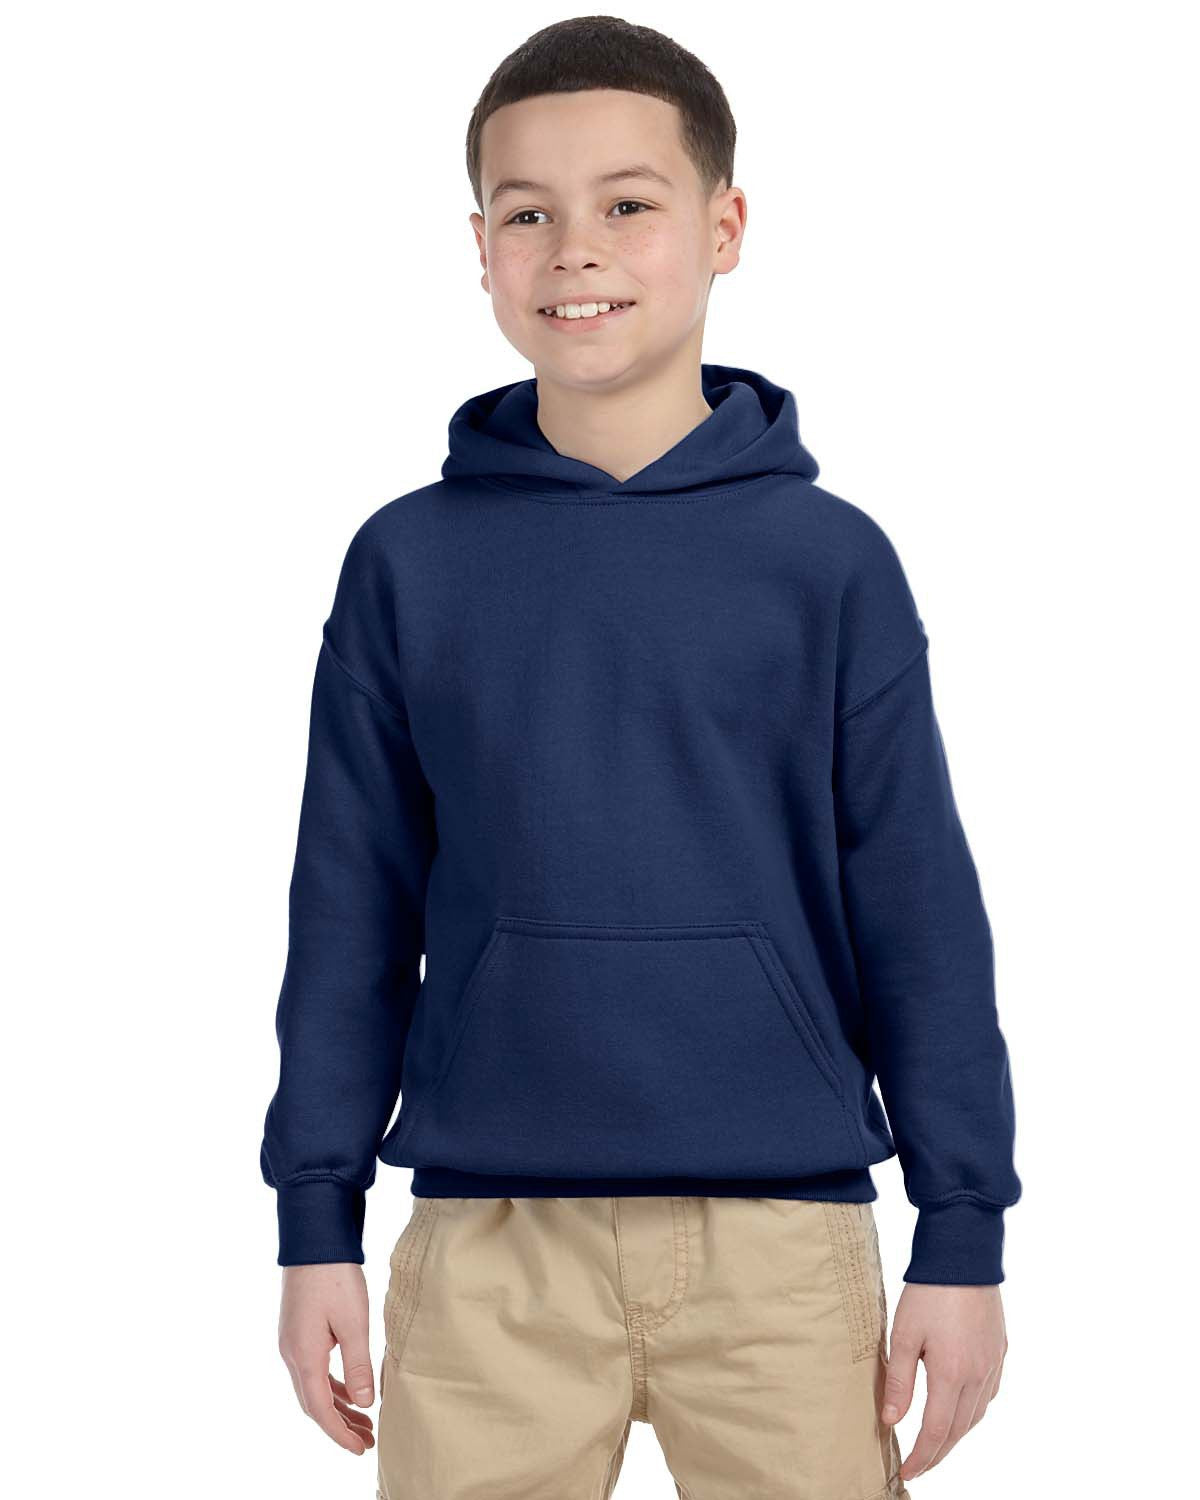 LW SWAG Navy Hooded Sweatshirt - Youth and Adult Sizes